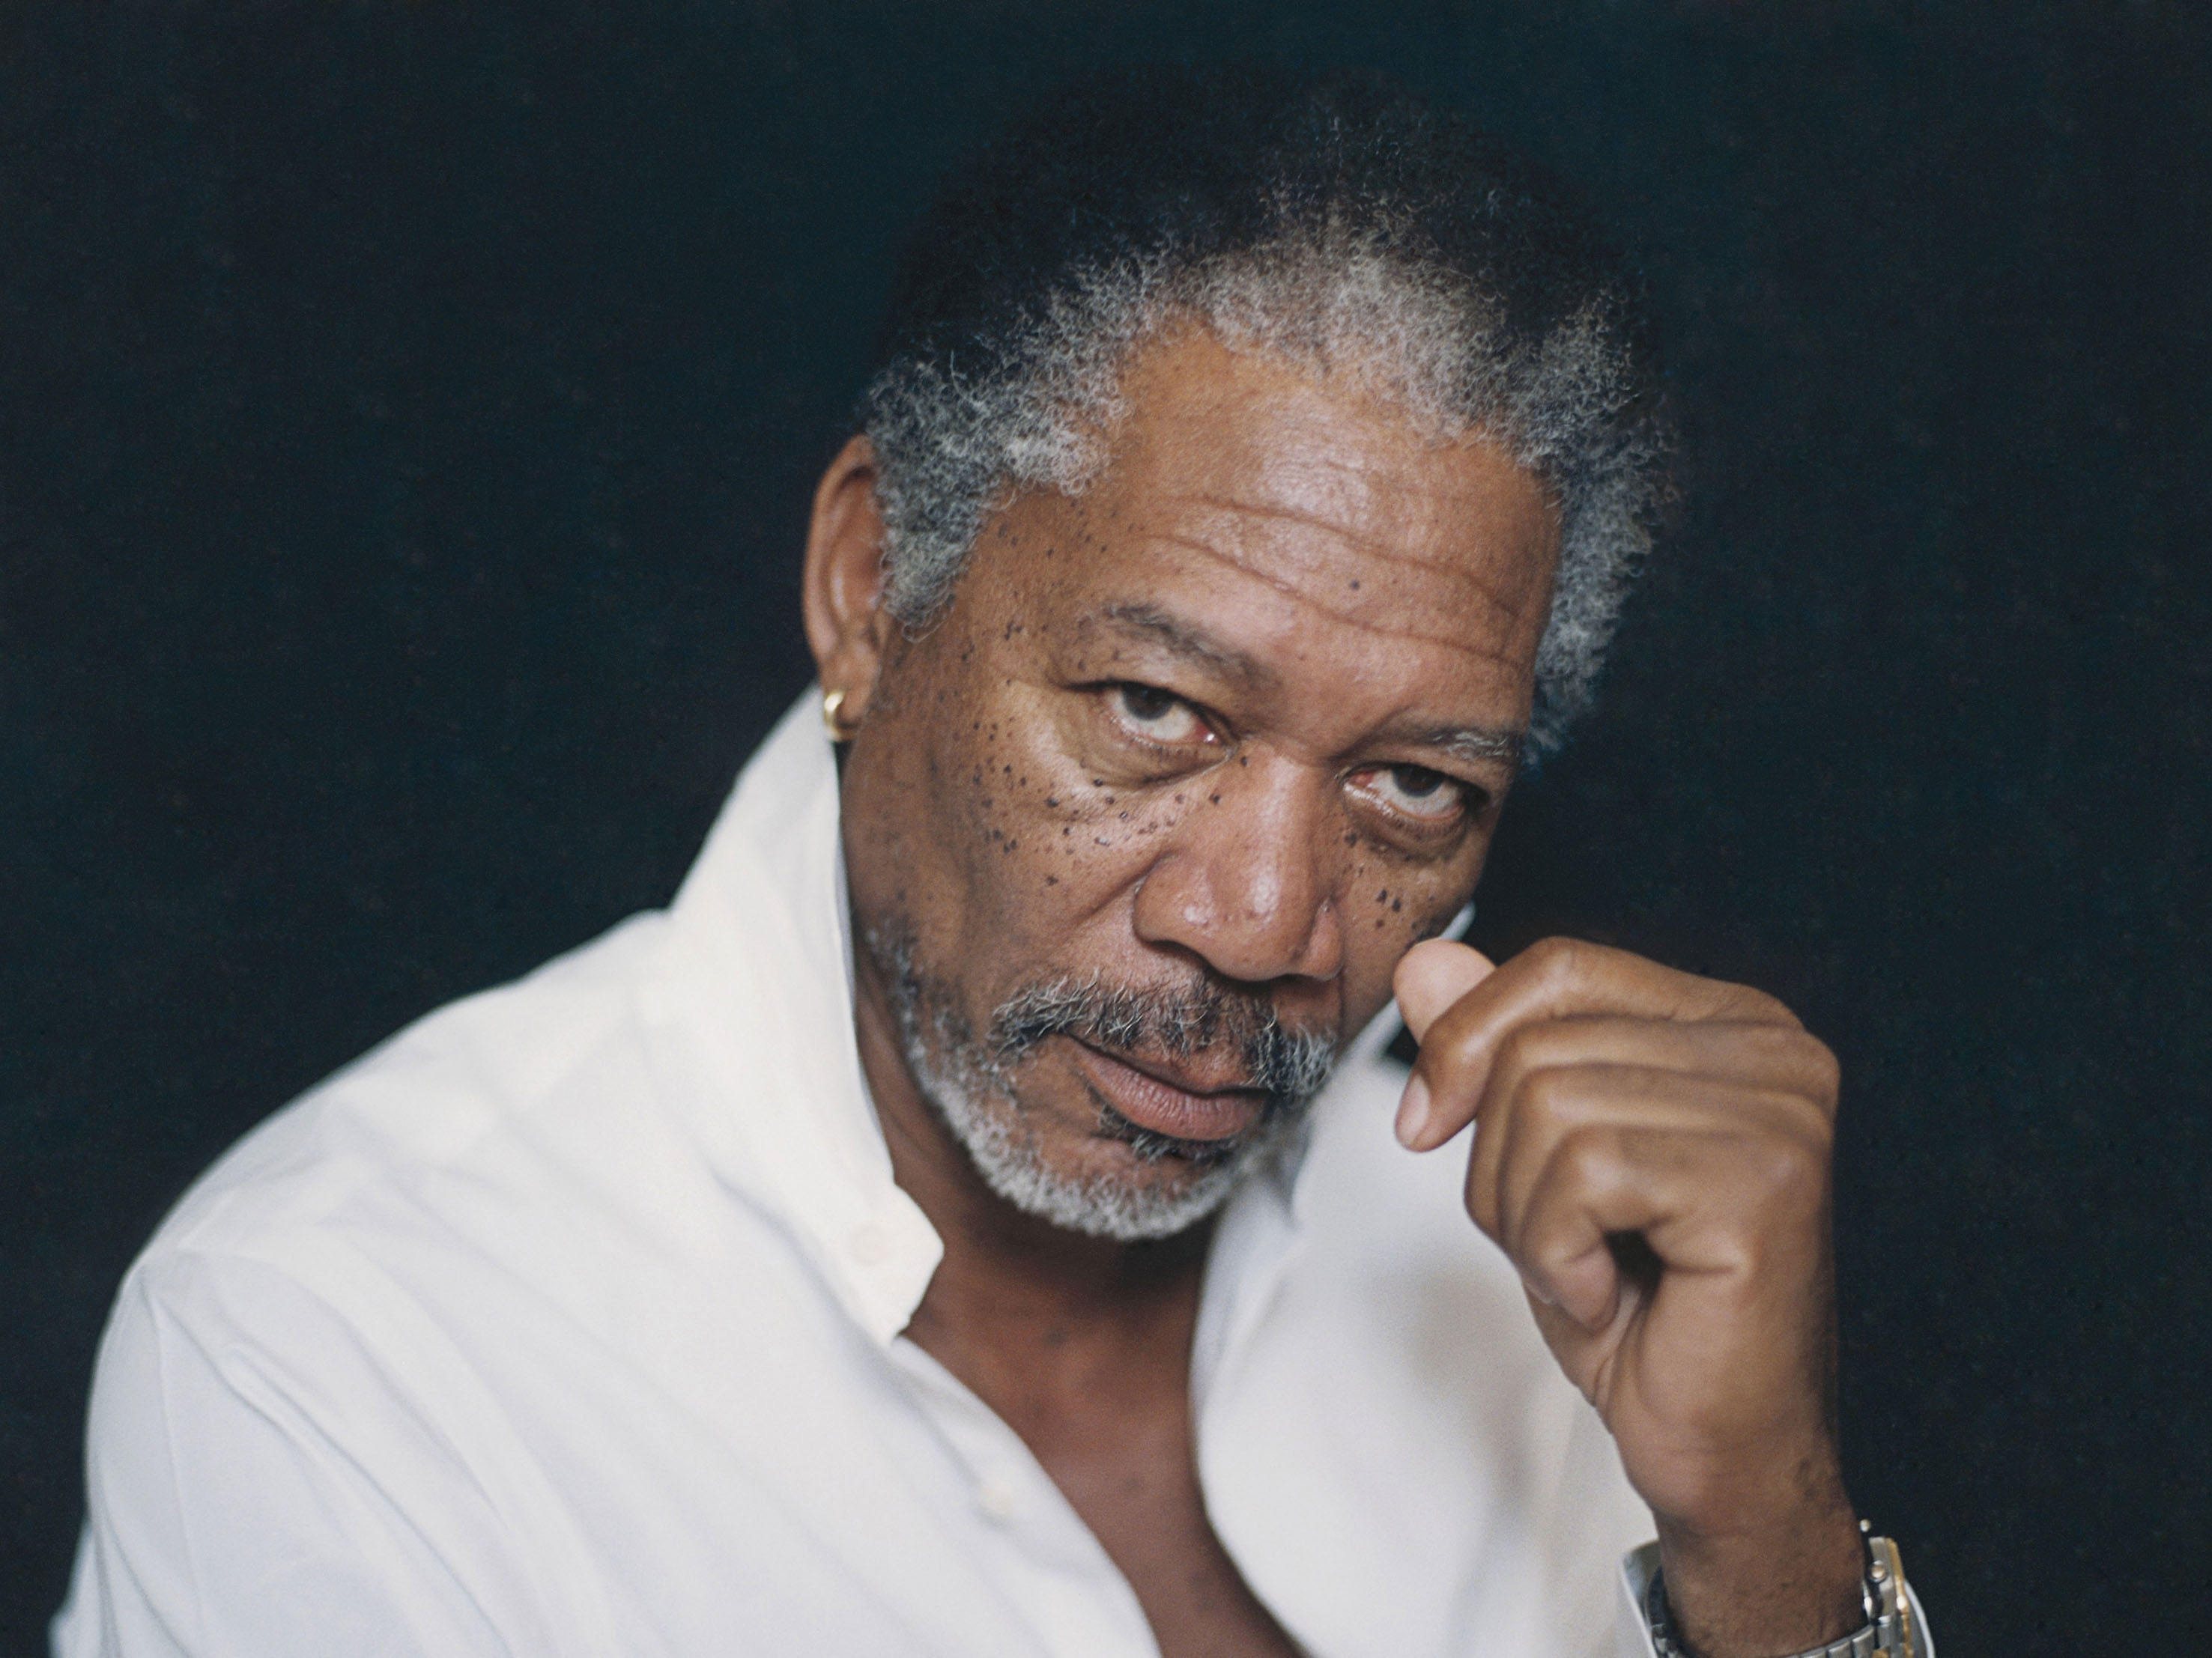 ca. 2001 --- Morgan Freeman --- Image by © Patrick Swirc/CORBIS OUTLINE